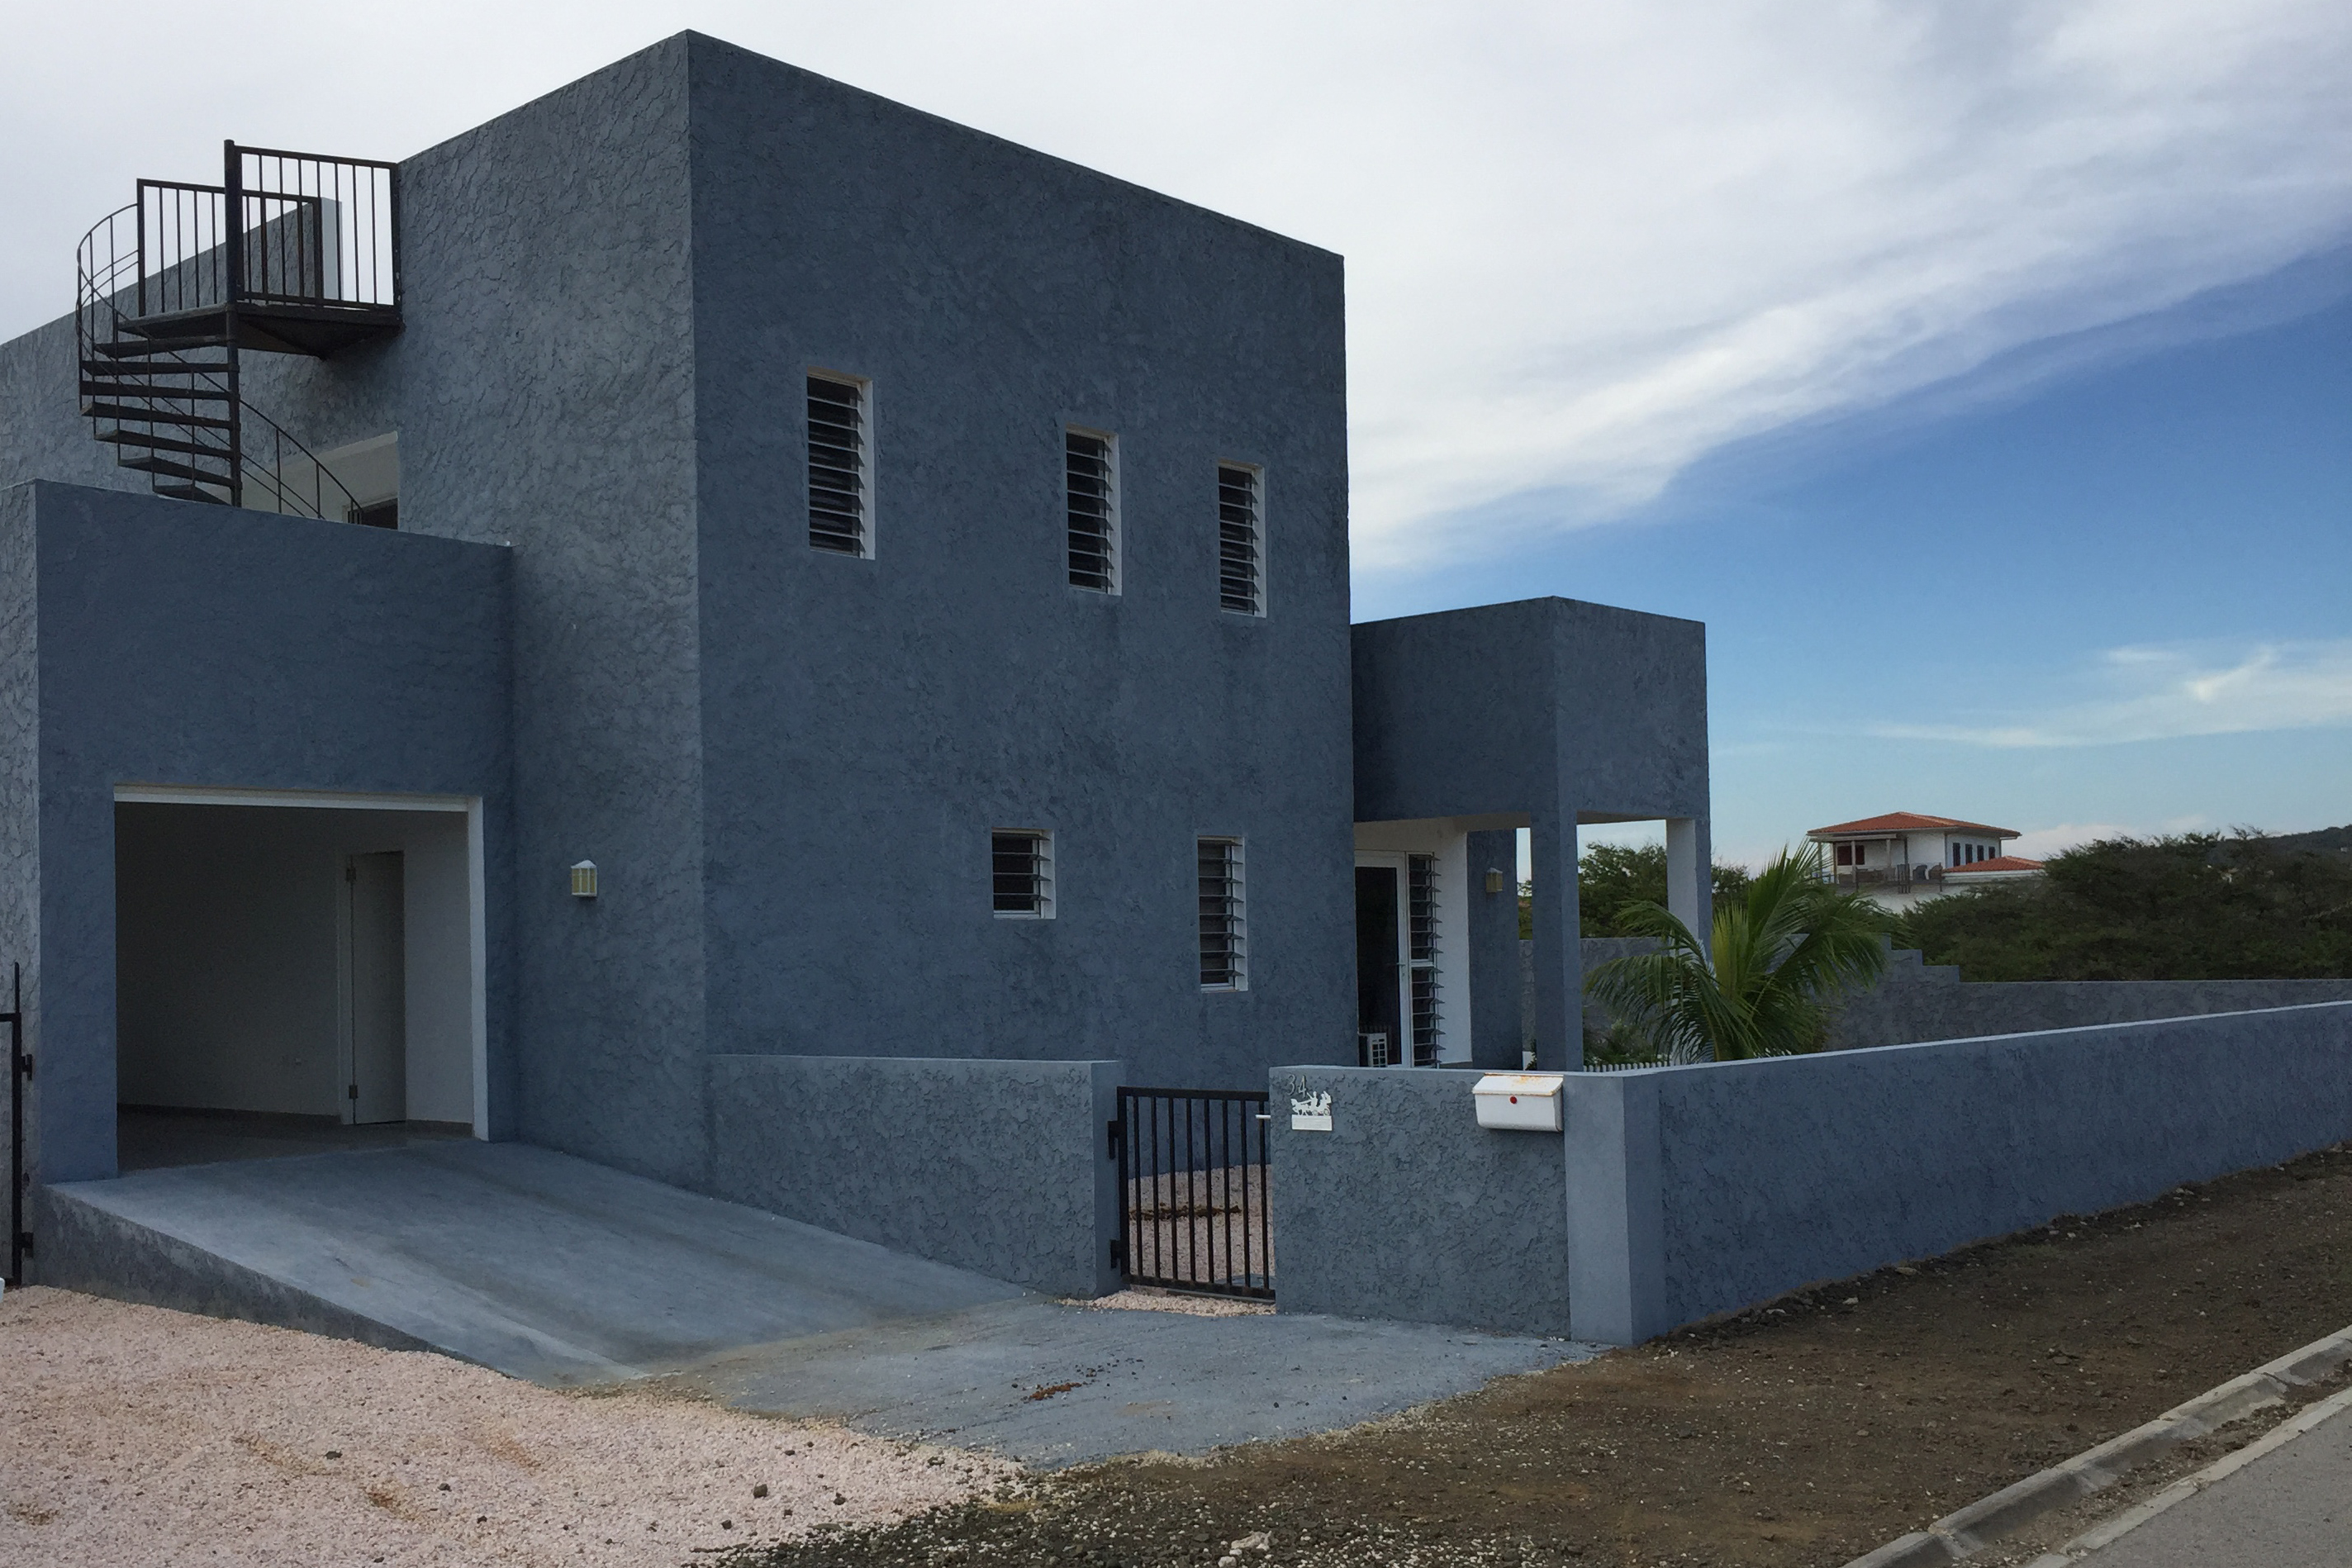 Single Family Home for Sale at Villa Ridge at Sabacedo Sabadeco, Bonaire